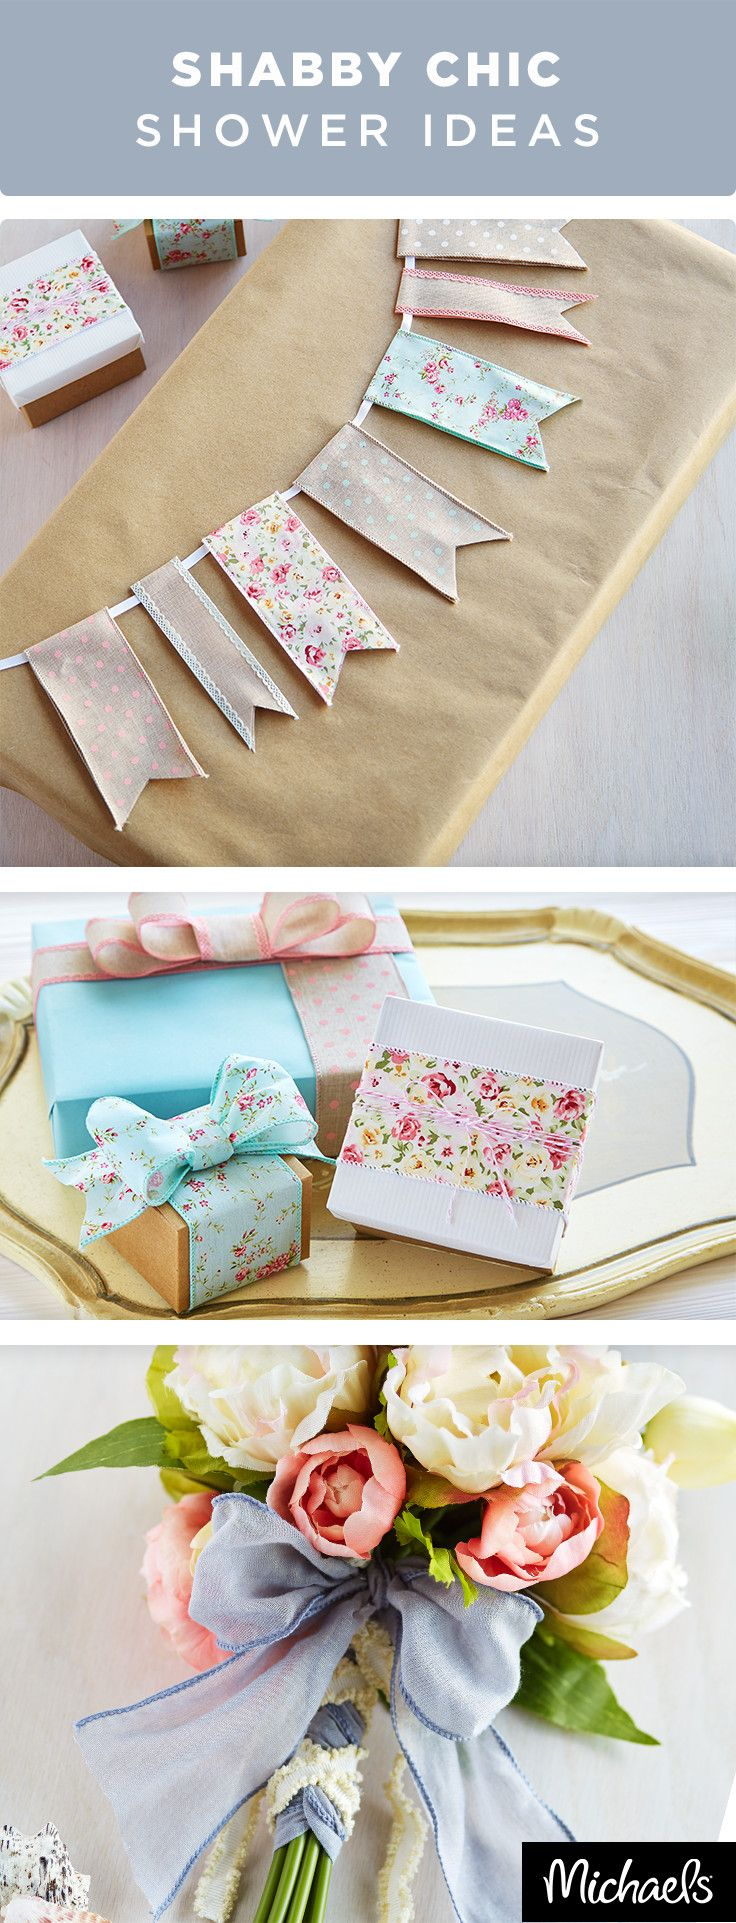 Craft fun and whimsical baby shower décor with ribbon, tassels and cute favor boxes. Use colorful ribbons to make a party banner or wrap up simple gift boxes. Get all of the supplies you need to host a beautiful baby shower at your local Michaels store.